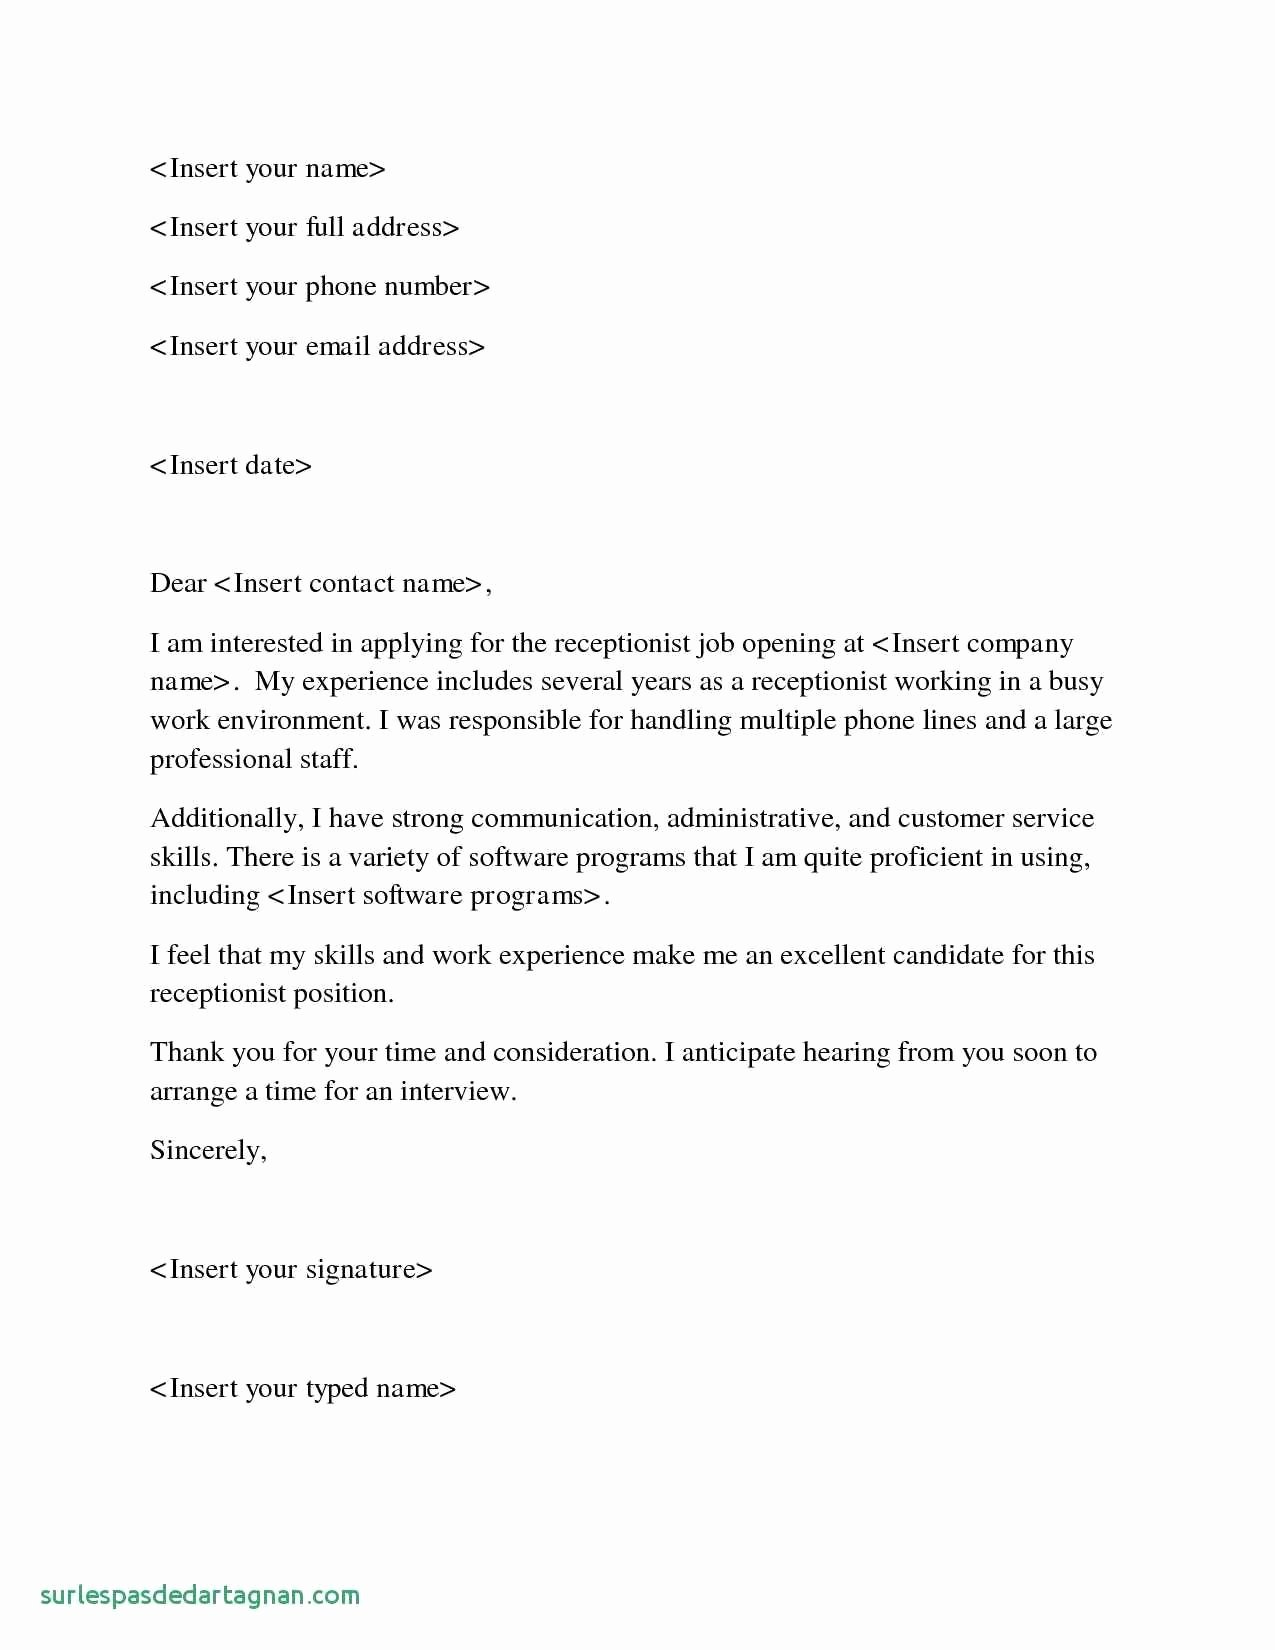 Voluntary Demotion Letter Sample Unique 26 Medical Receptionist Cover Letter